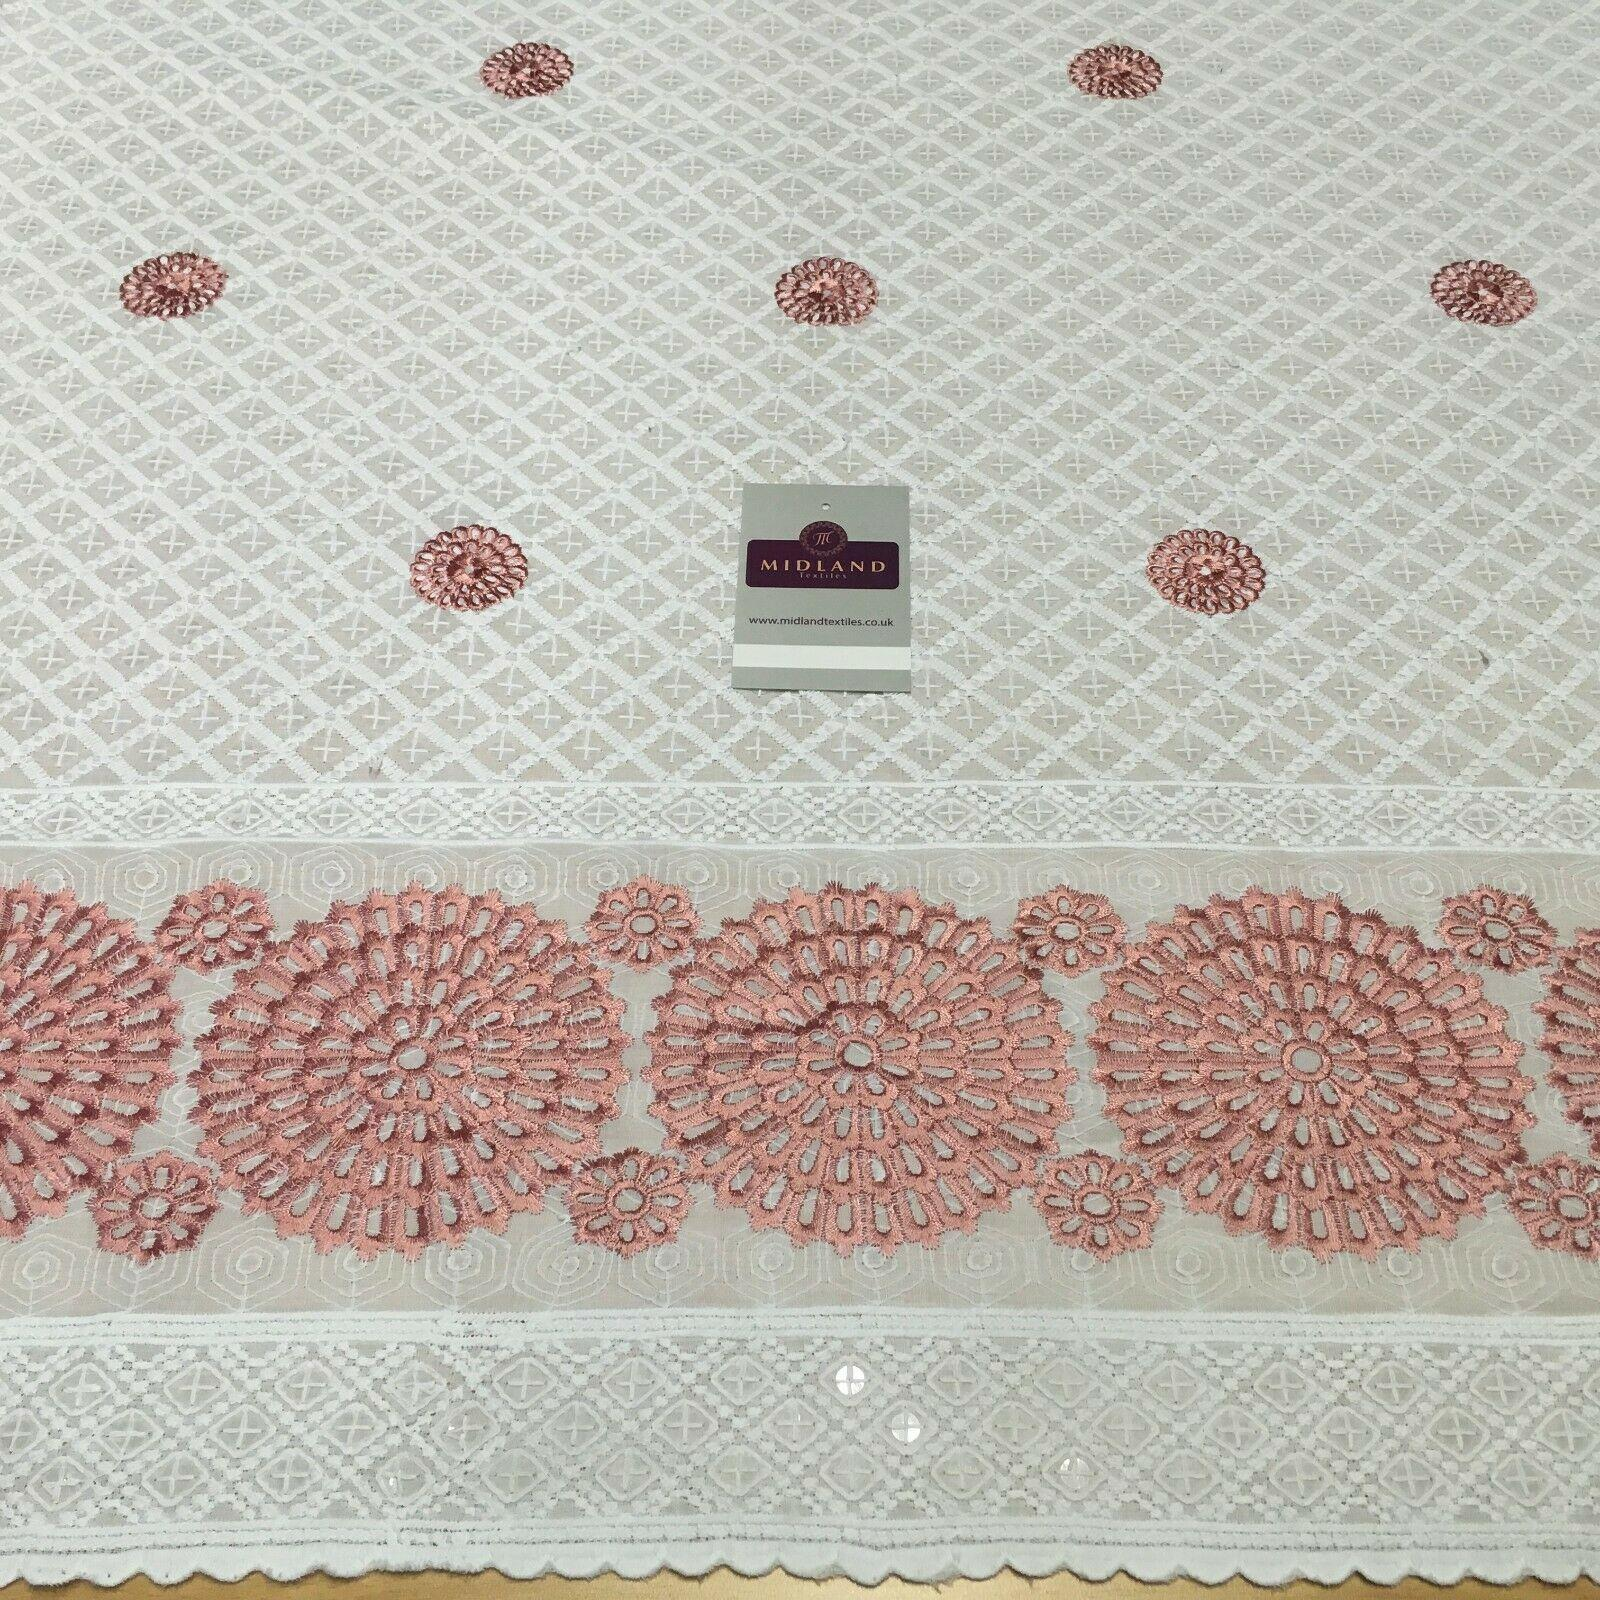 Cotton broderie anglaise Border Cotton blend fabric 139cm M1196 Mtex